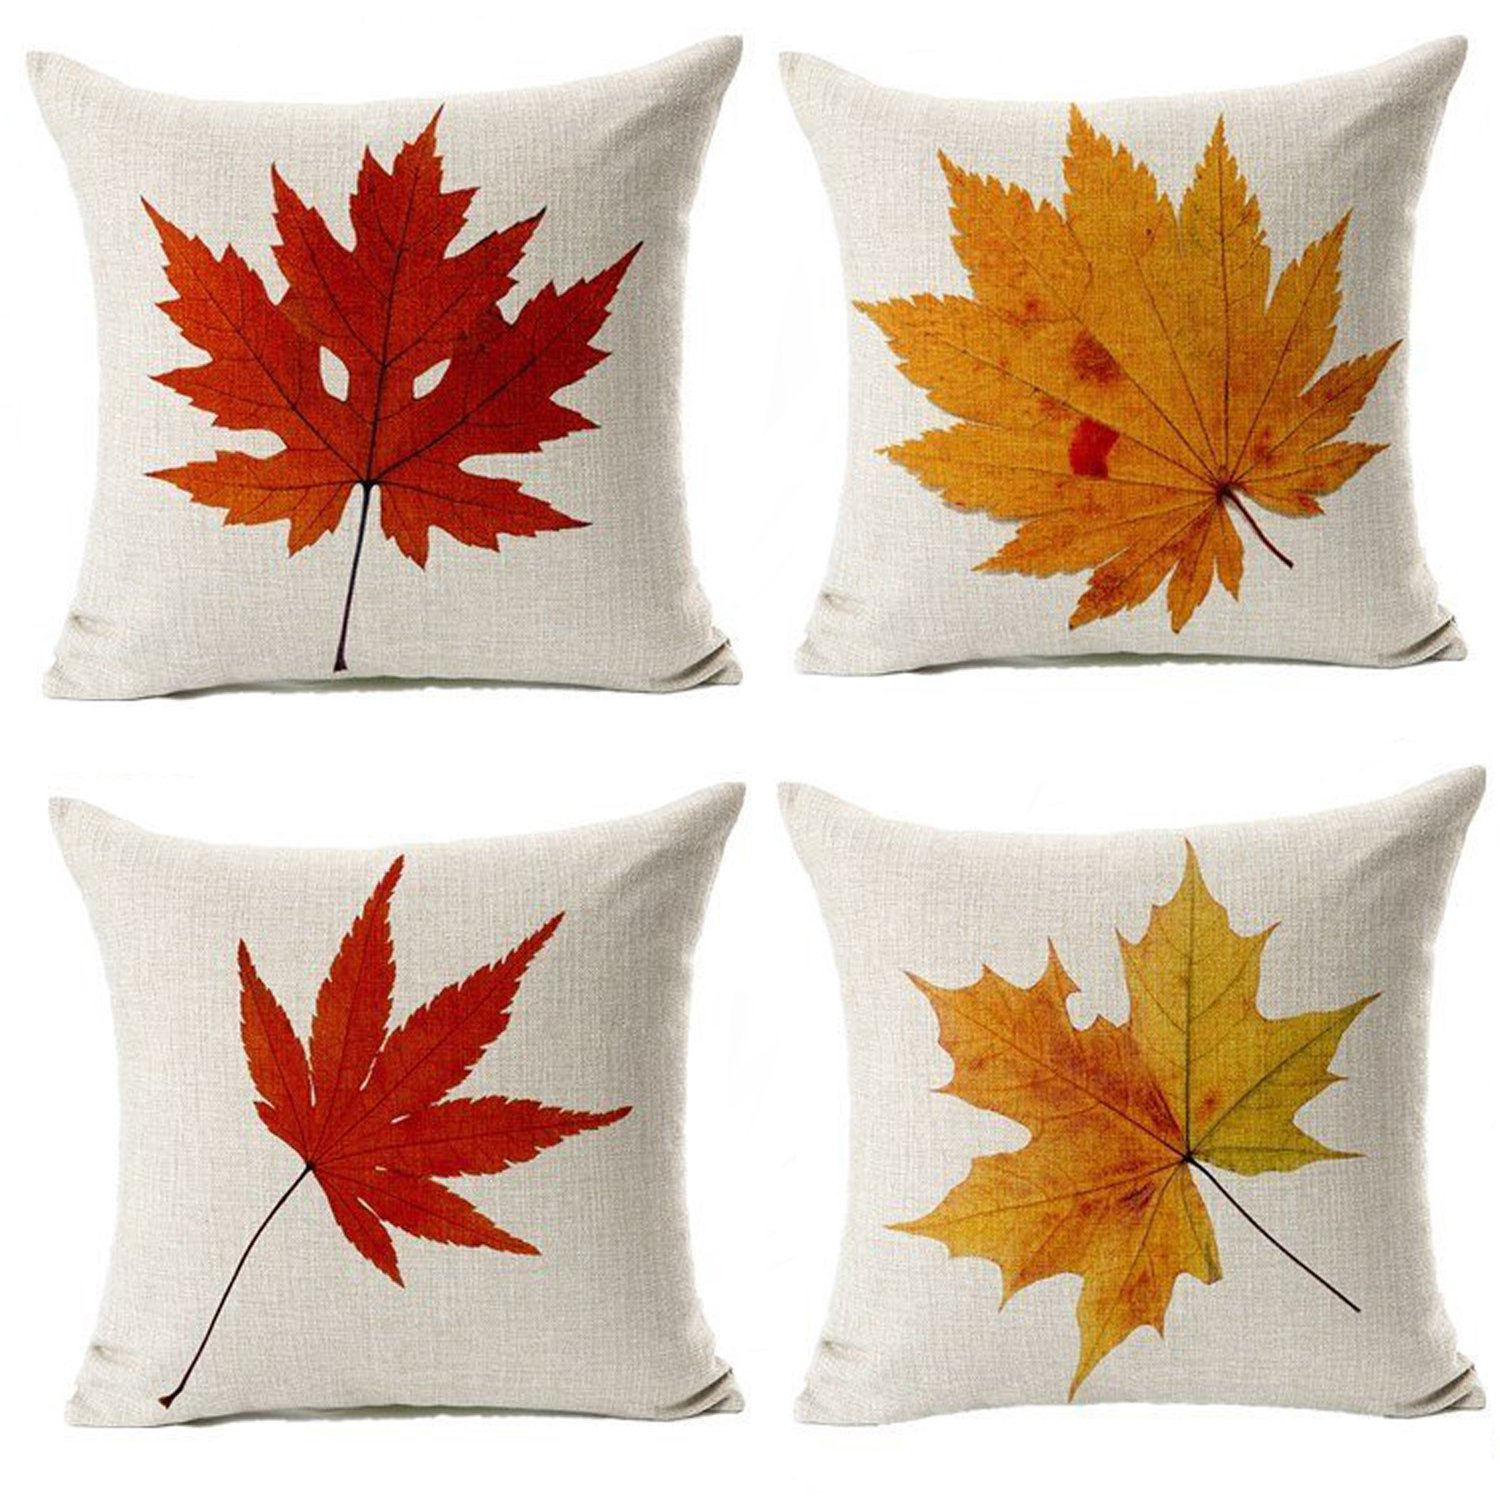 Maple Leaves Throw Pillow Covers - Wonder4 Fall Decor Colorful Maple Leaves Cushion Cover